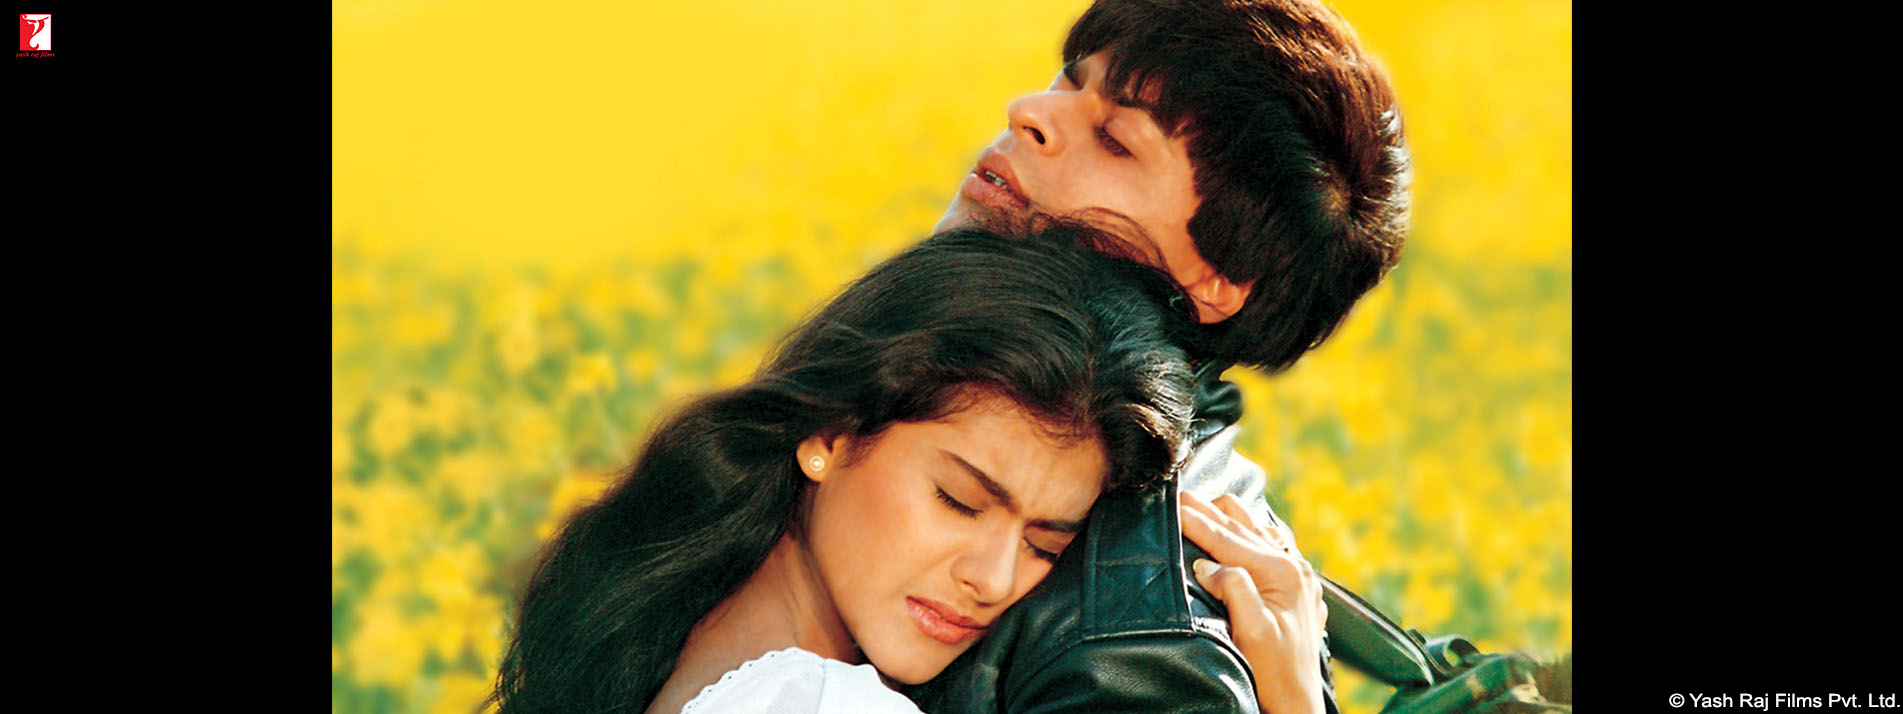 Dilwale Dulhania Le Jayenge Movie - Video Songs, Movie ...